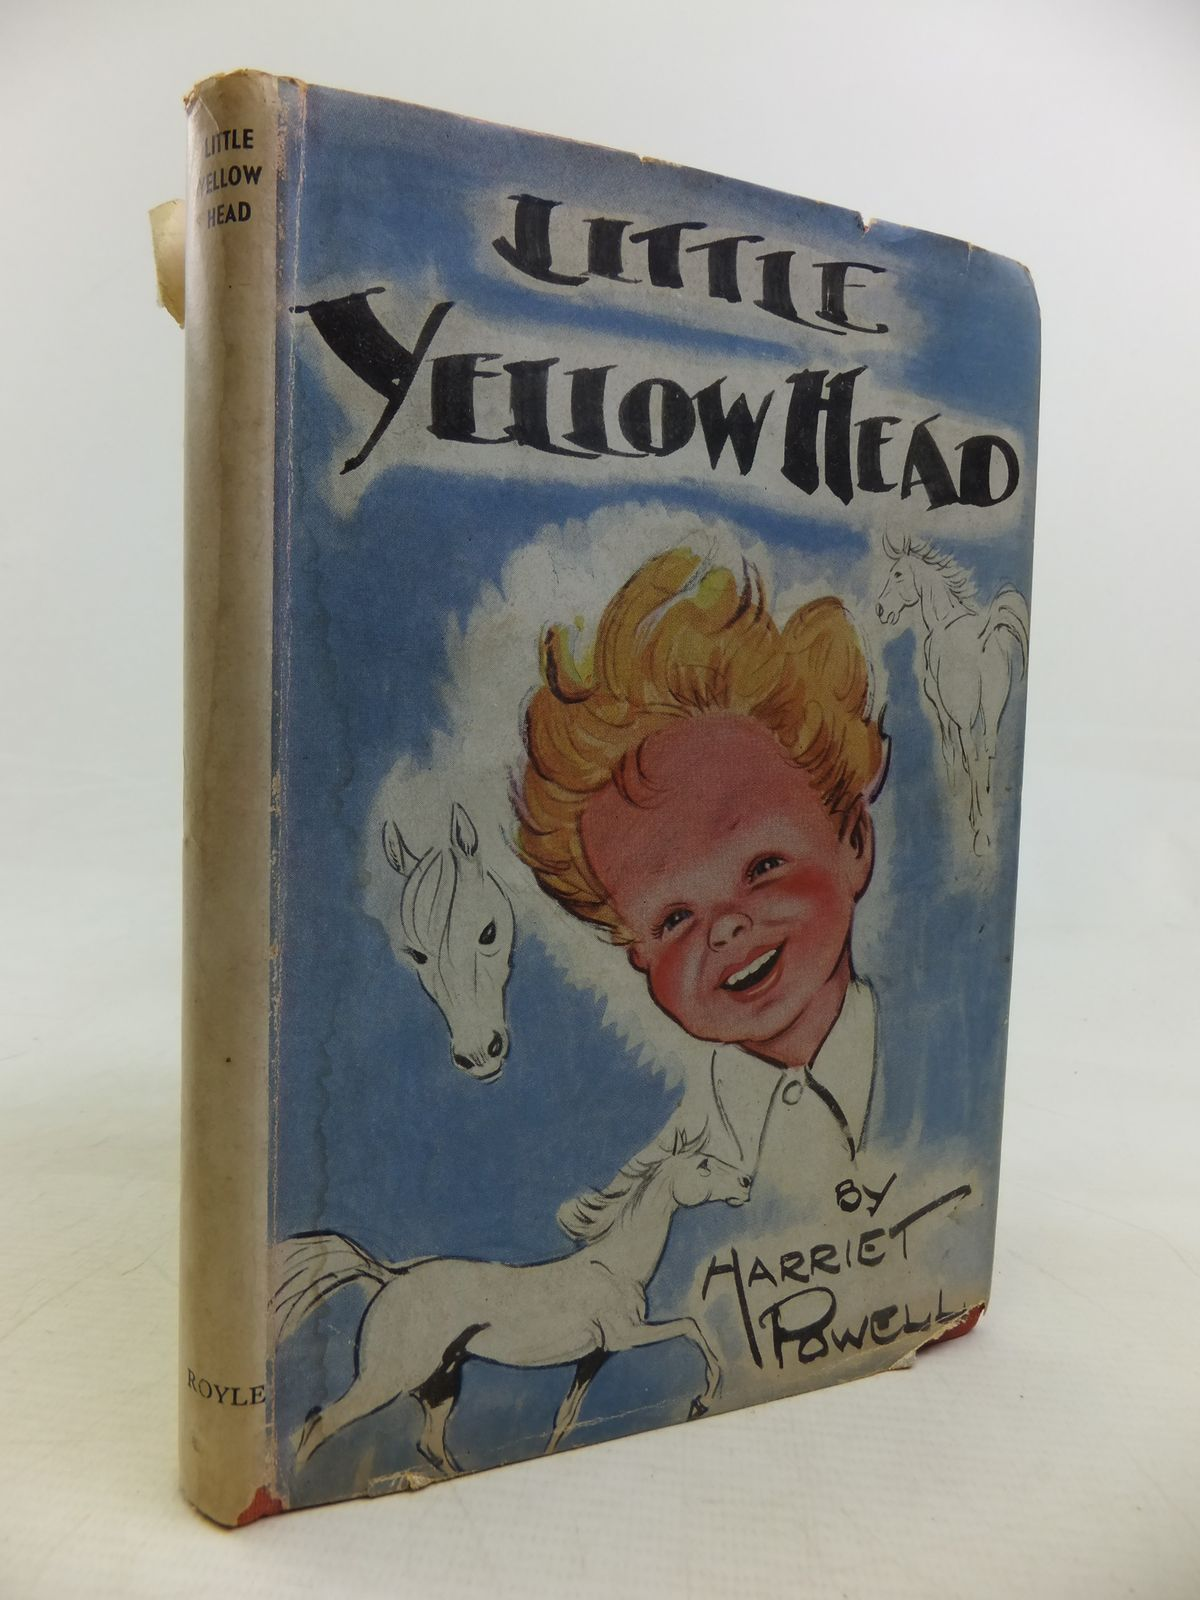 Photo of LITTLE YELLOW HEAD written by Powell, Harriet illustrated by Brown, Mill published by Noel Carrington, Royle Publications Ltd. (STOCK CODE: 1810958)  for sale by Stella & Rose's Books